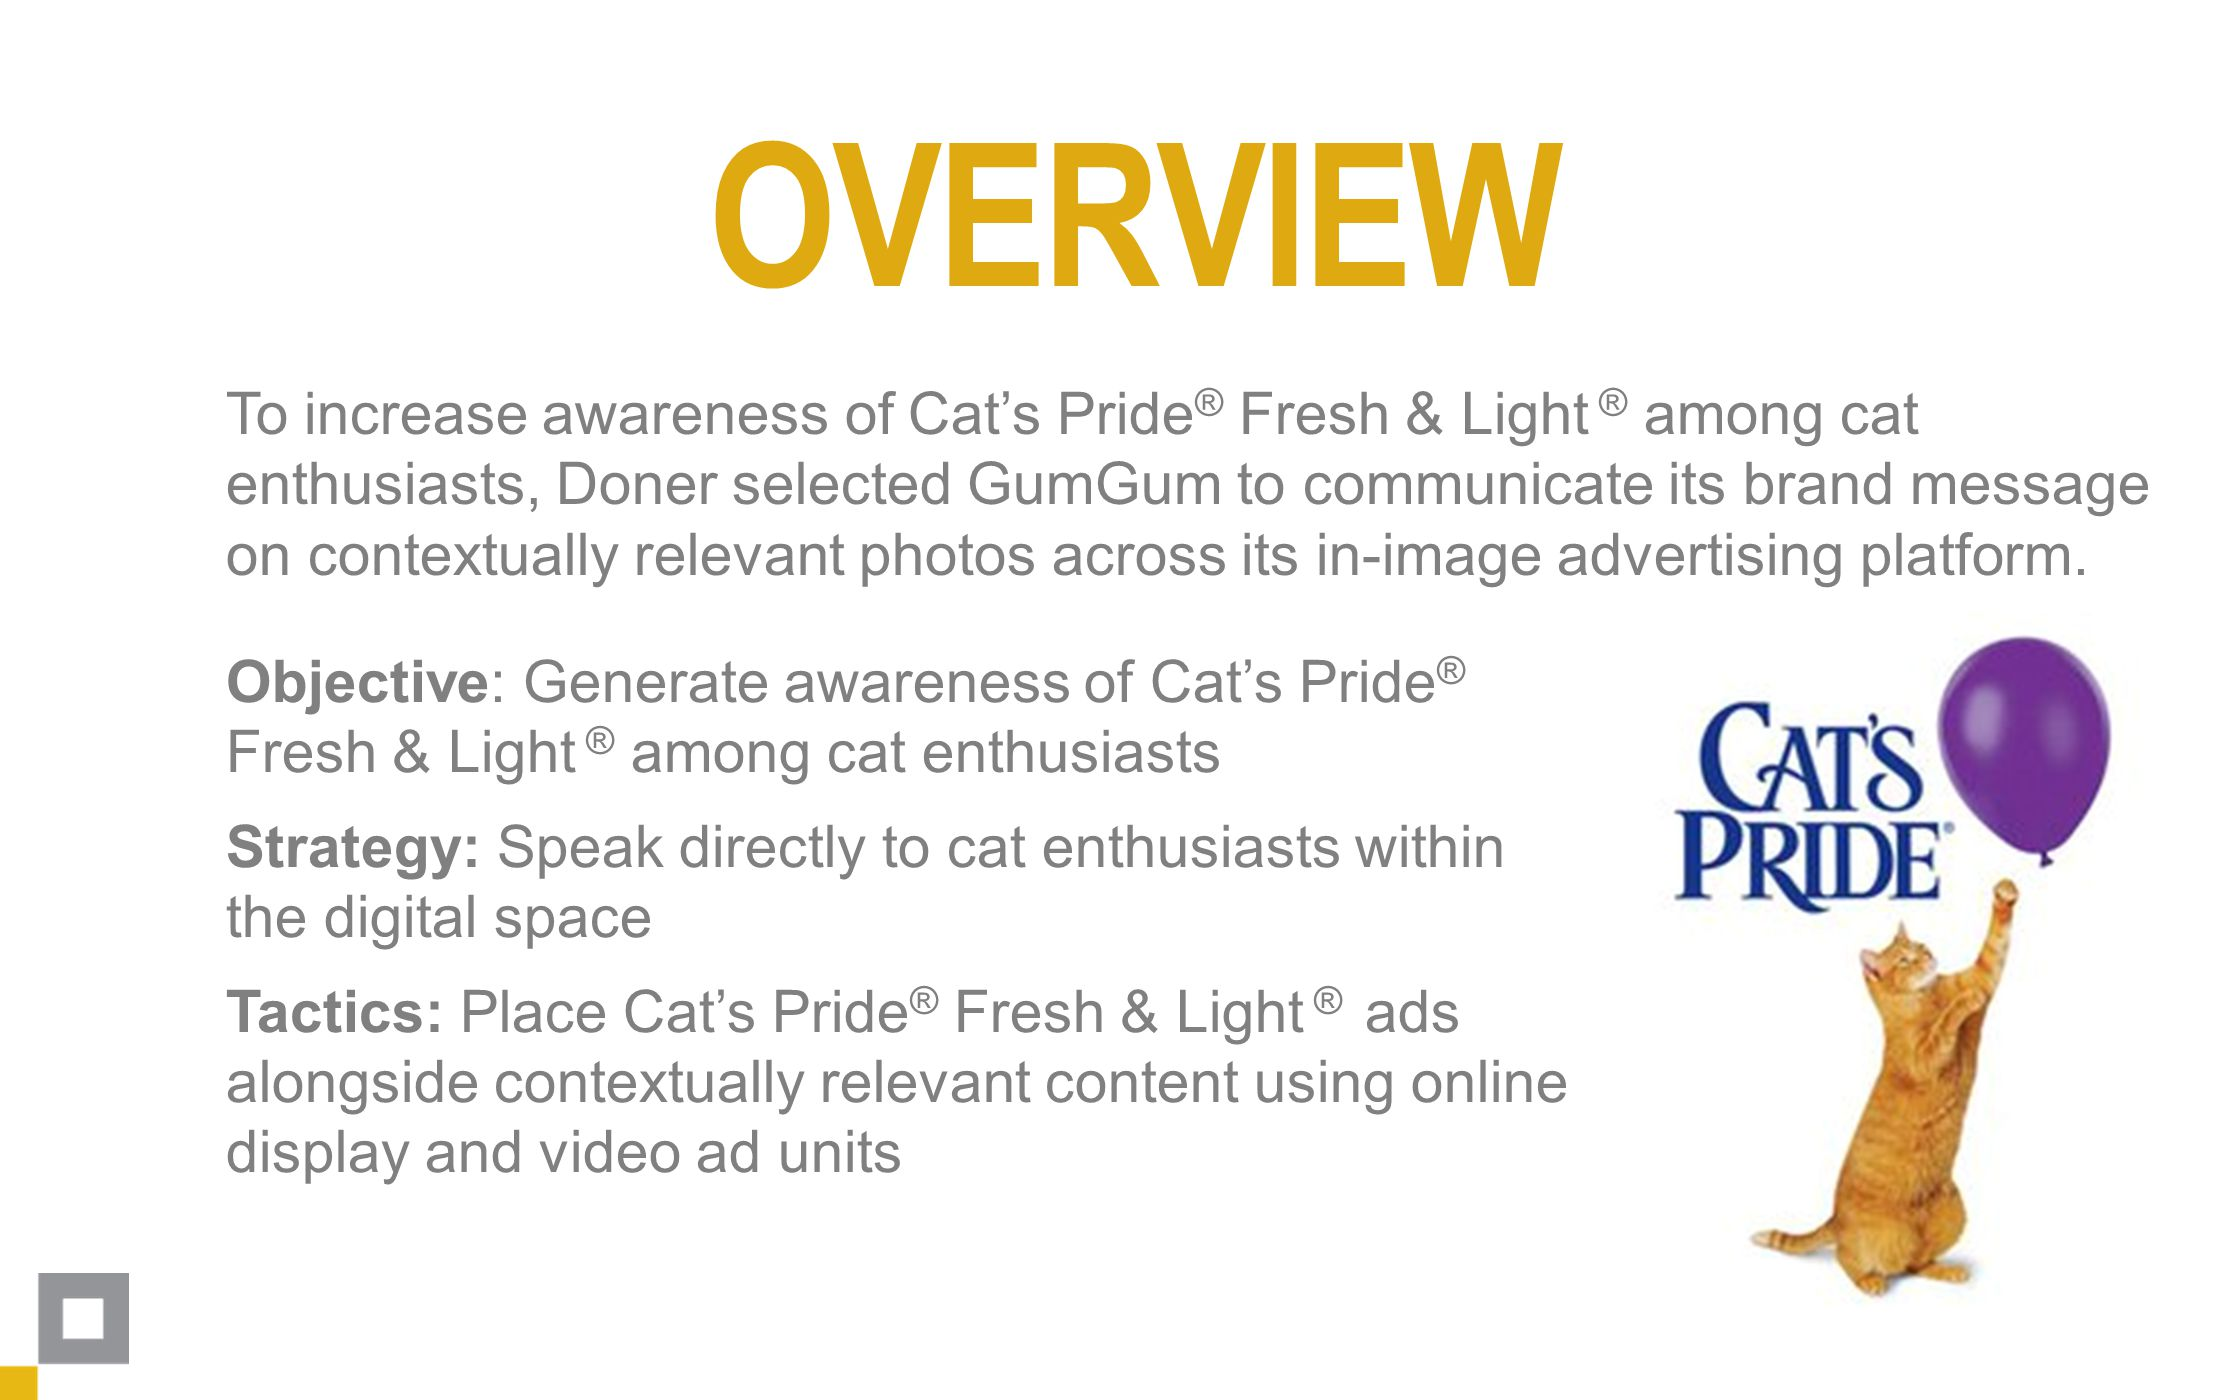 To increase awareness of Cat's Pride ® Fresh & Light ® among cat enthusiasts, Doner selected GumGum to communicate its brand message on contextually relevant photos across its in-image advertising platform.